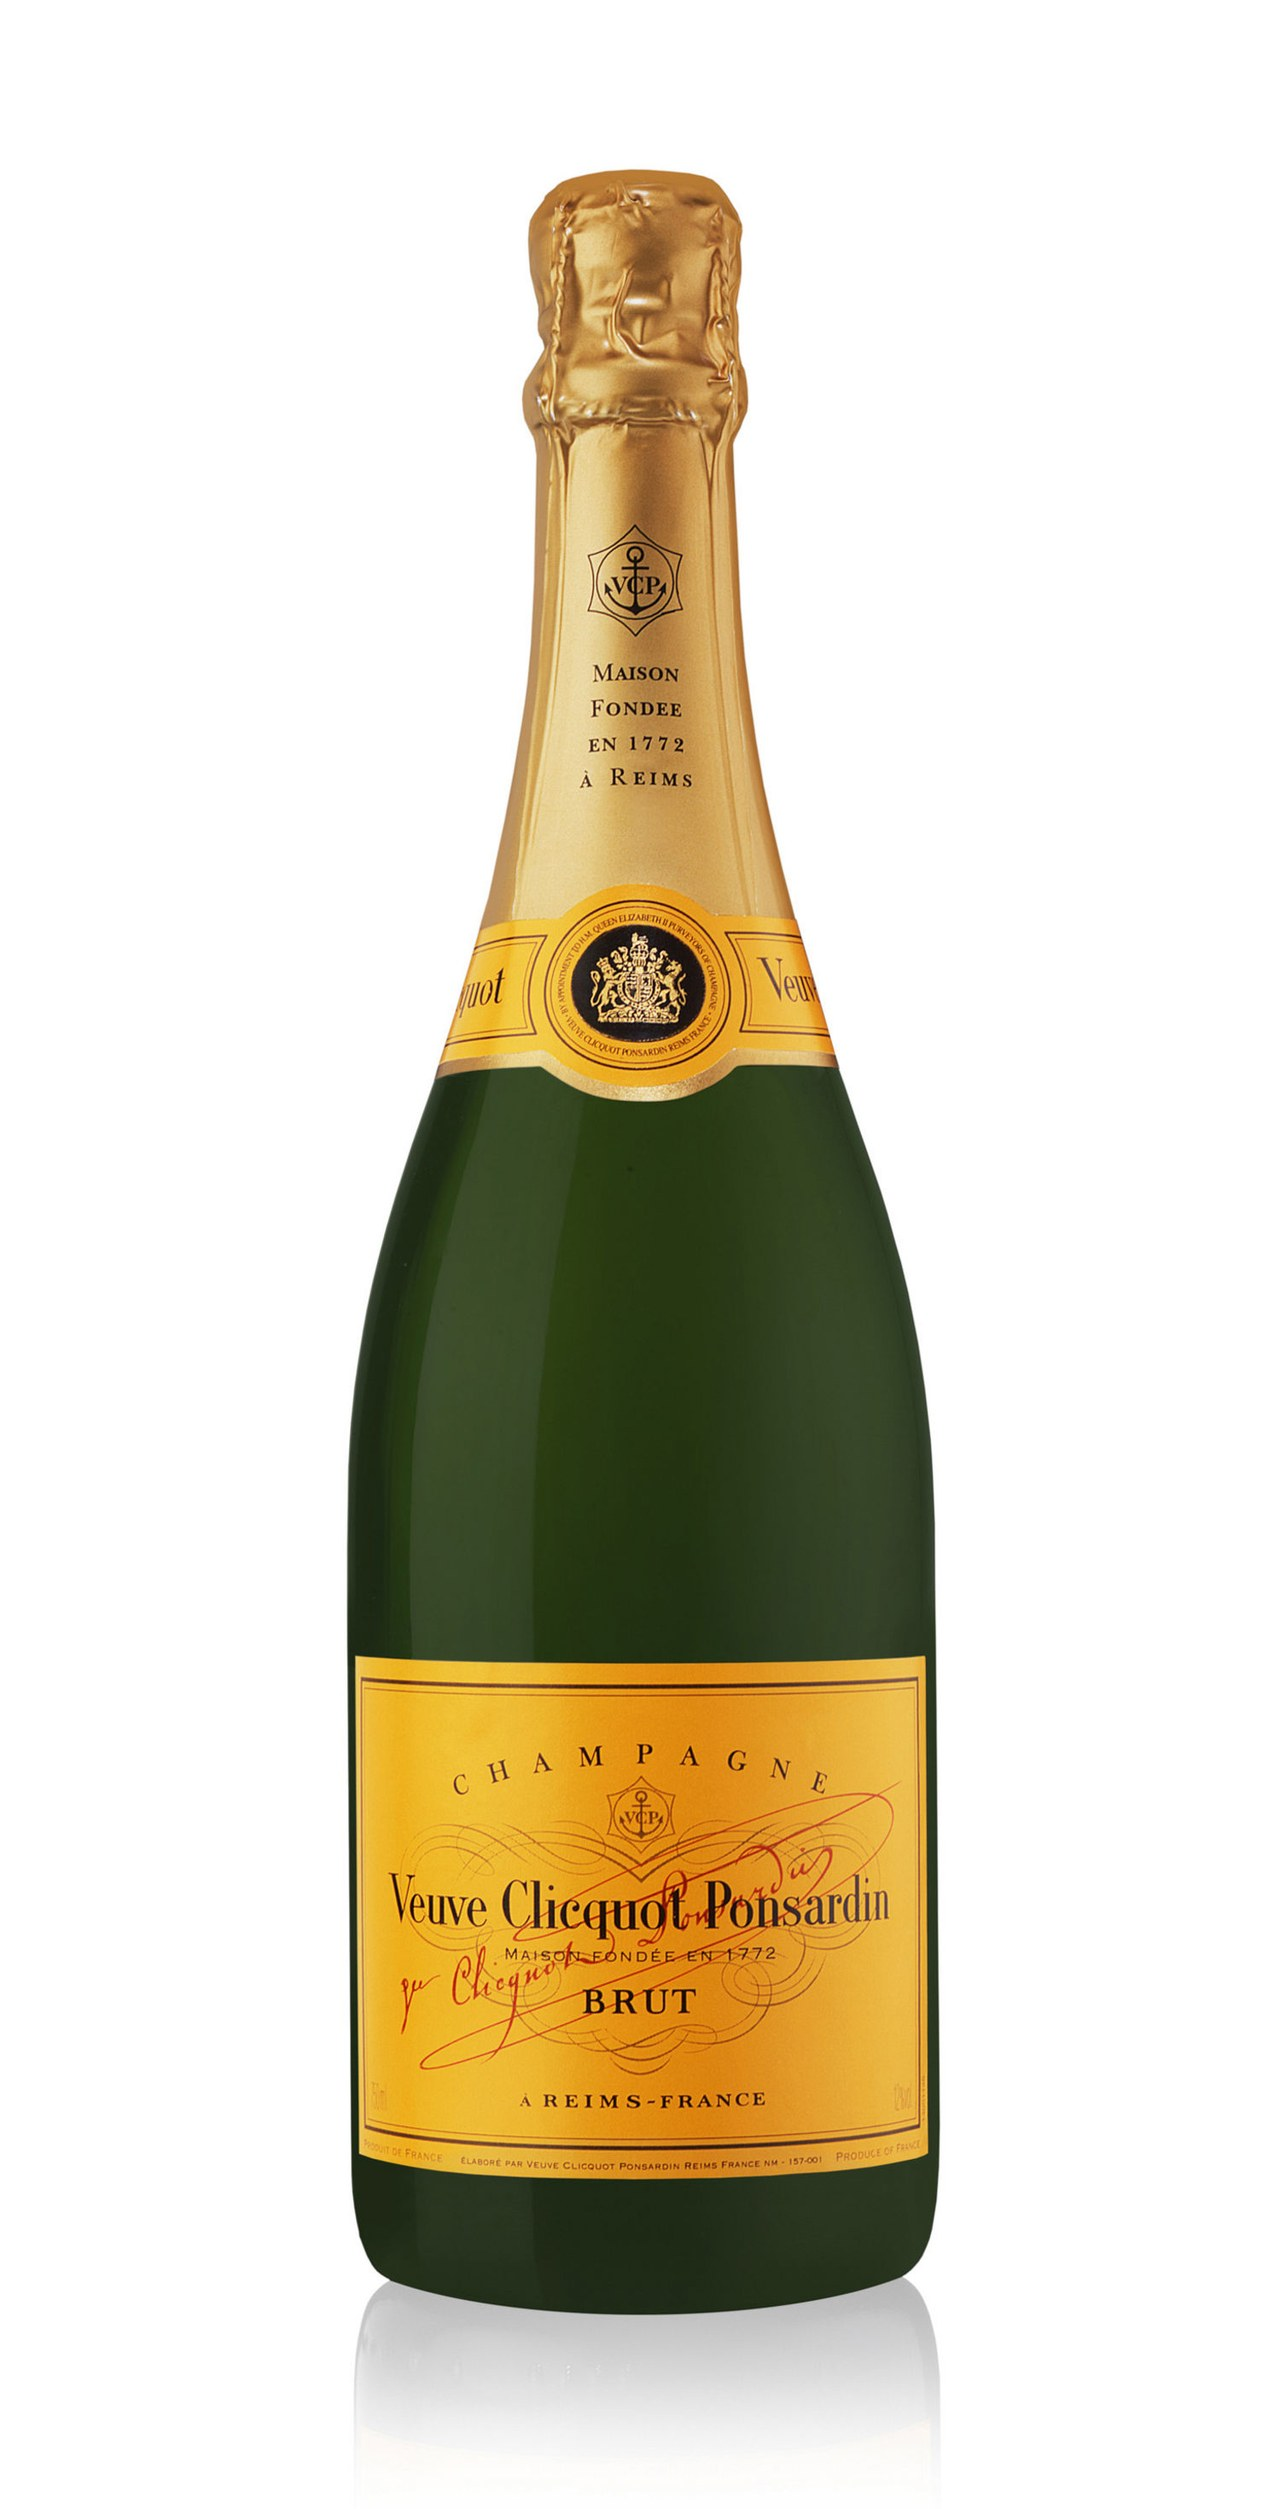 For the one who wants to have some fun:  Spice up the holiday party by picking up some bubbly on the way!   //source